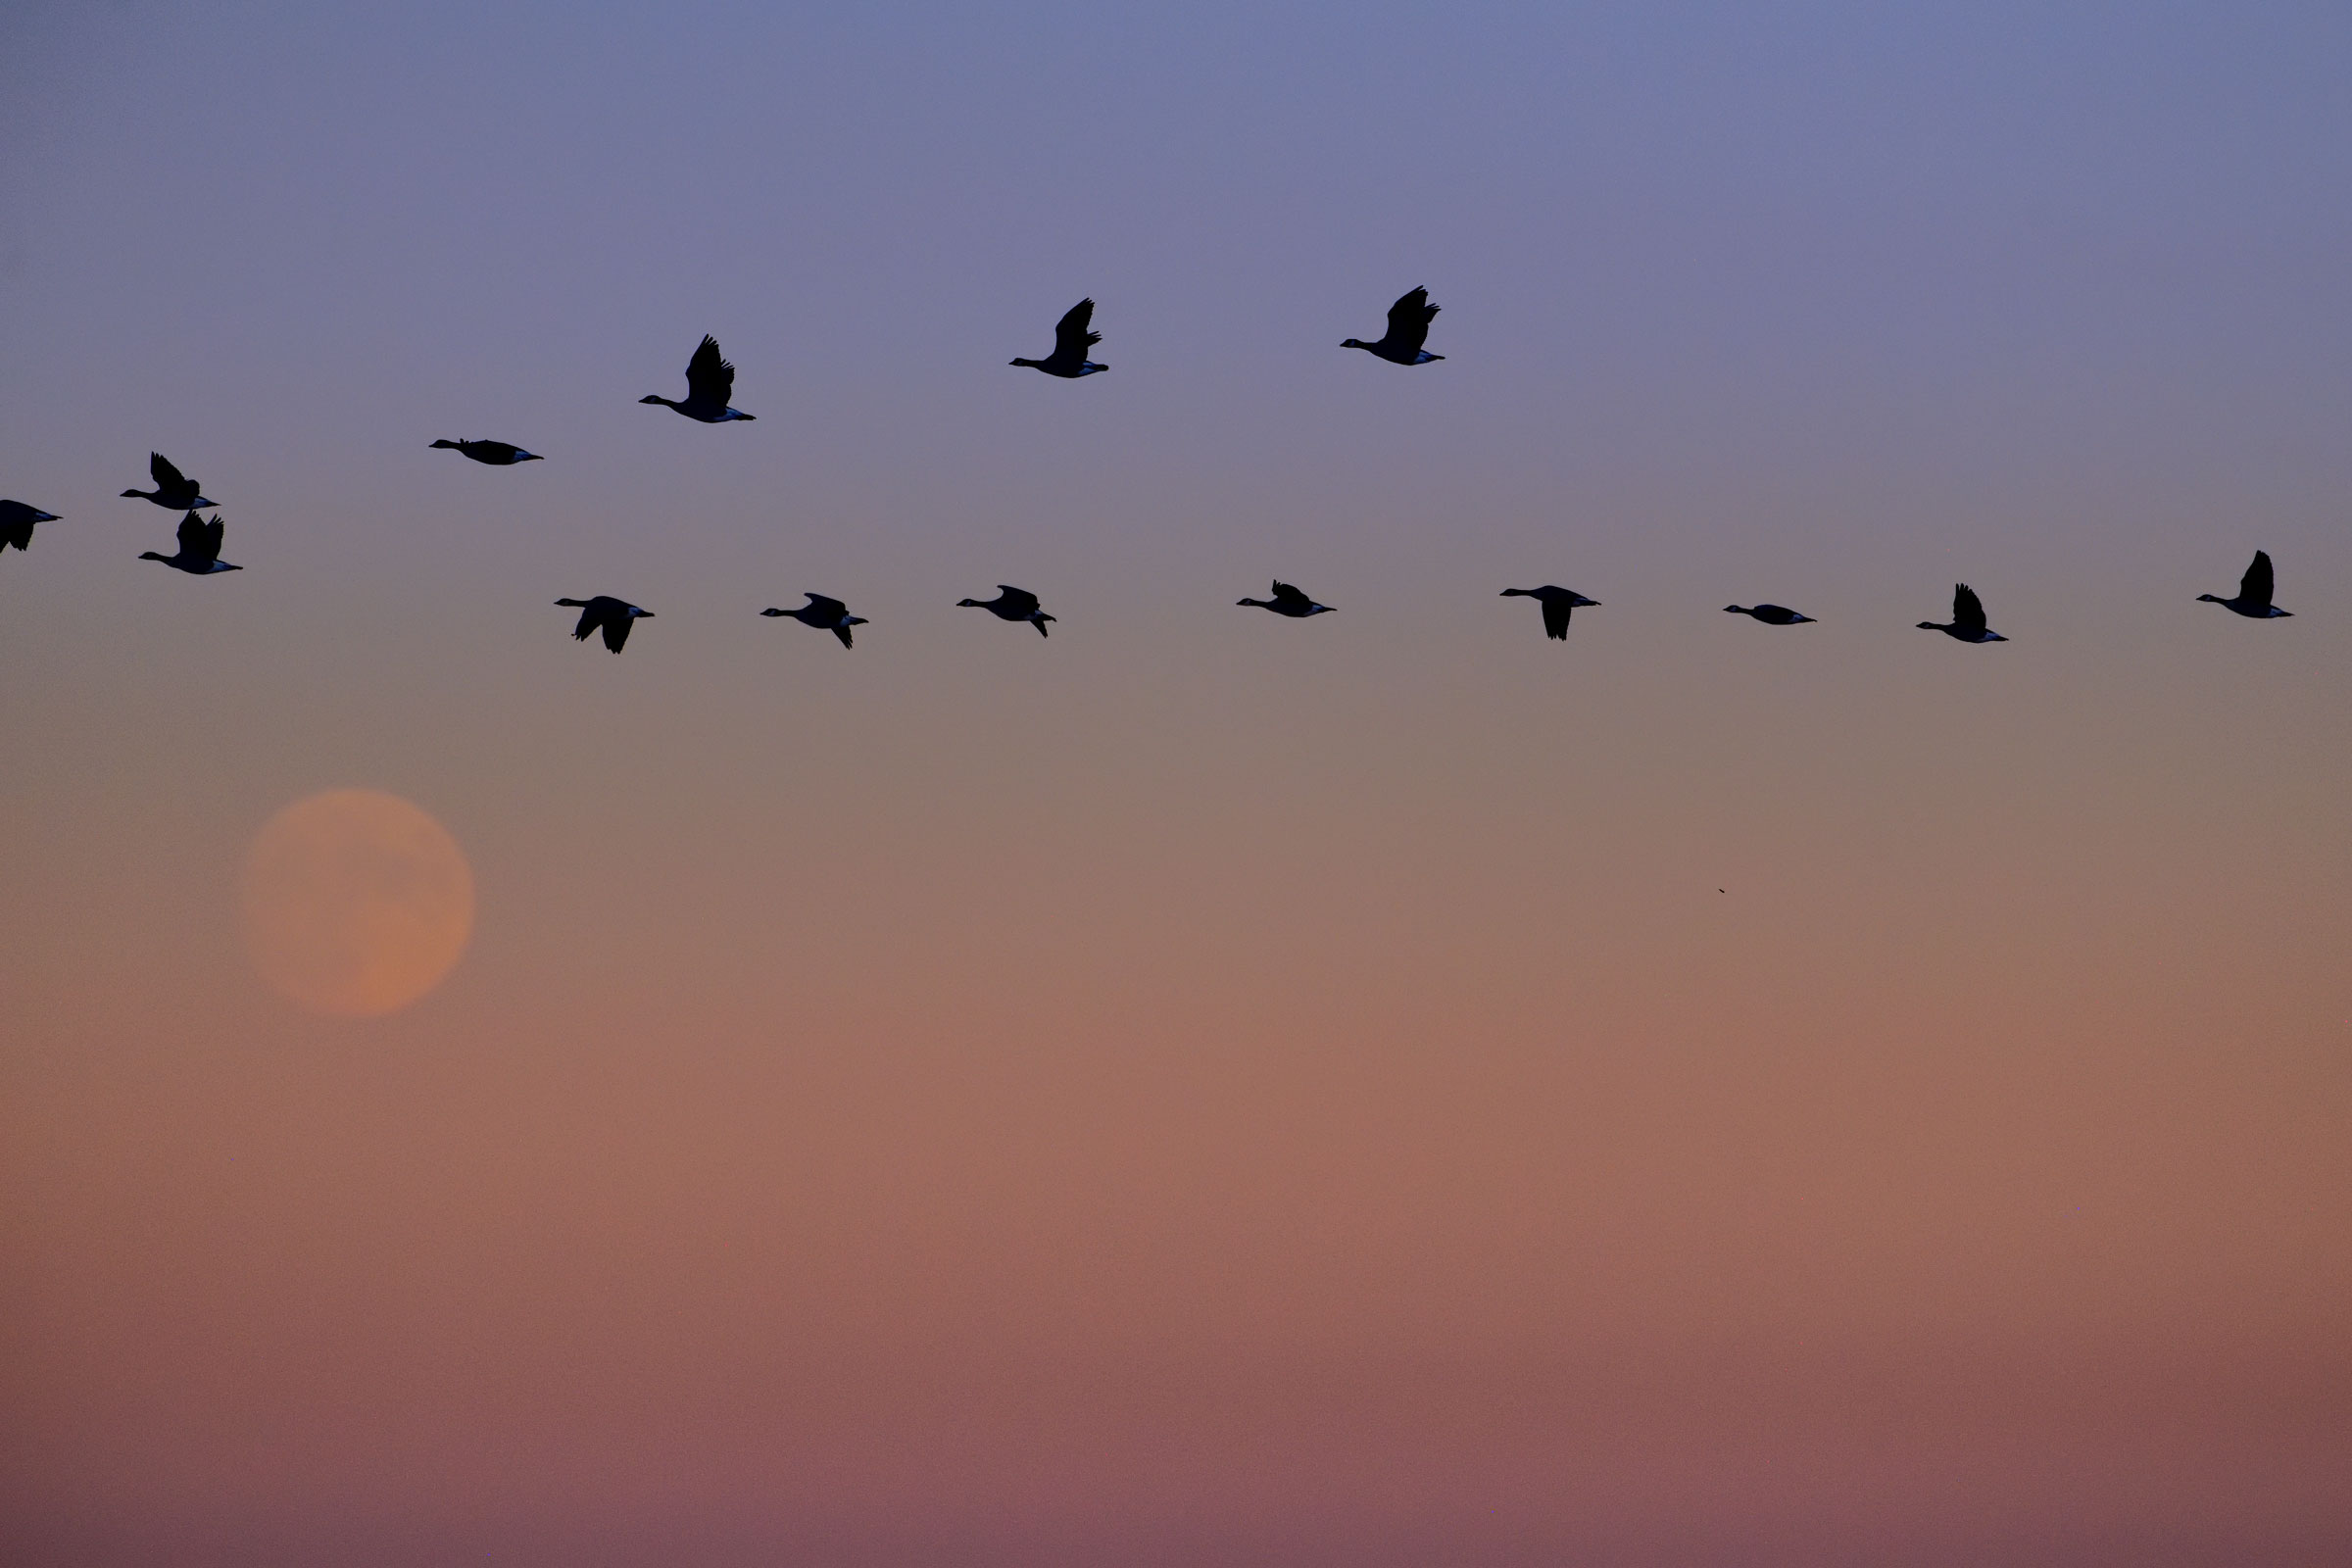 As twilight descends in Boulder, Colorado, in October, Canada Geese fly high overhead, joining the pulse of birds migrating south under the cover of darkness. Keith Ladzinski